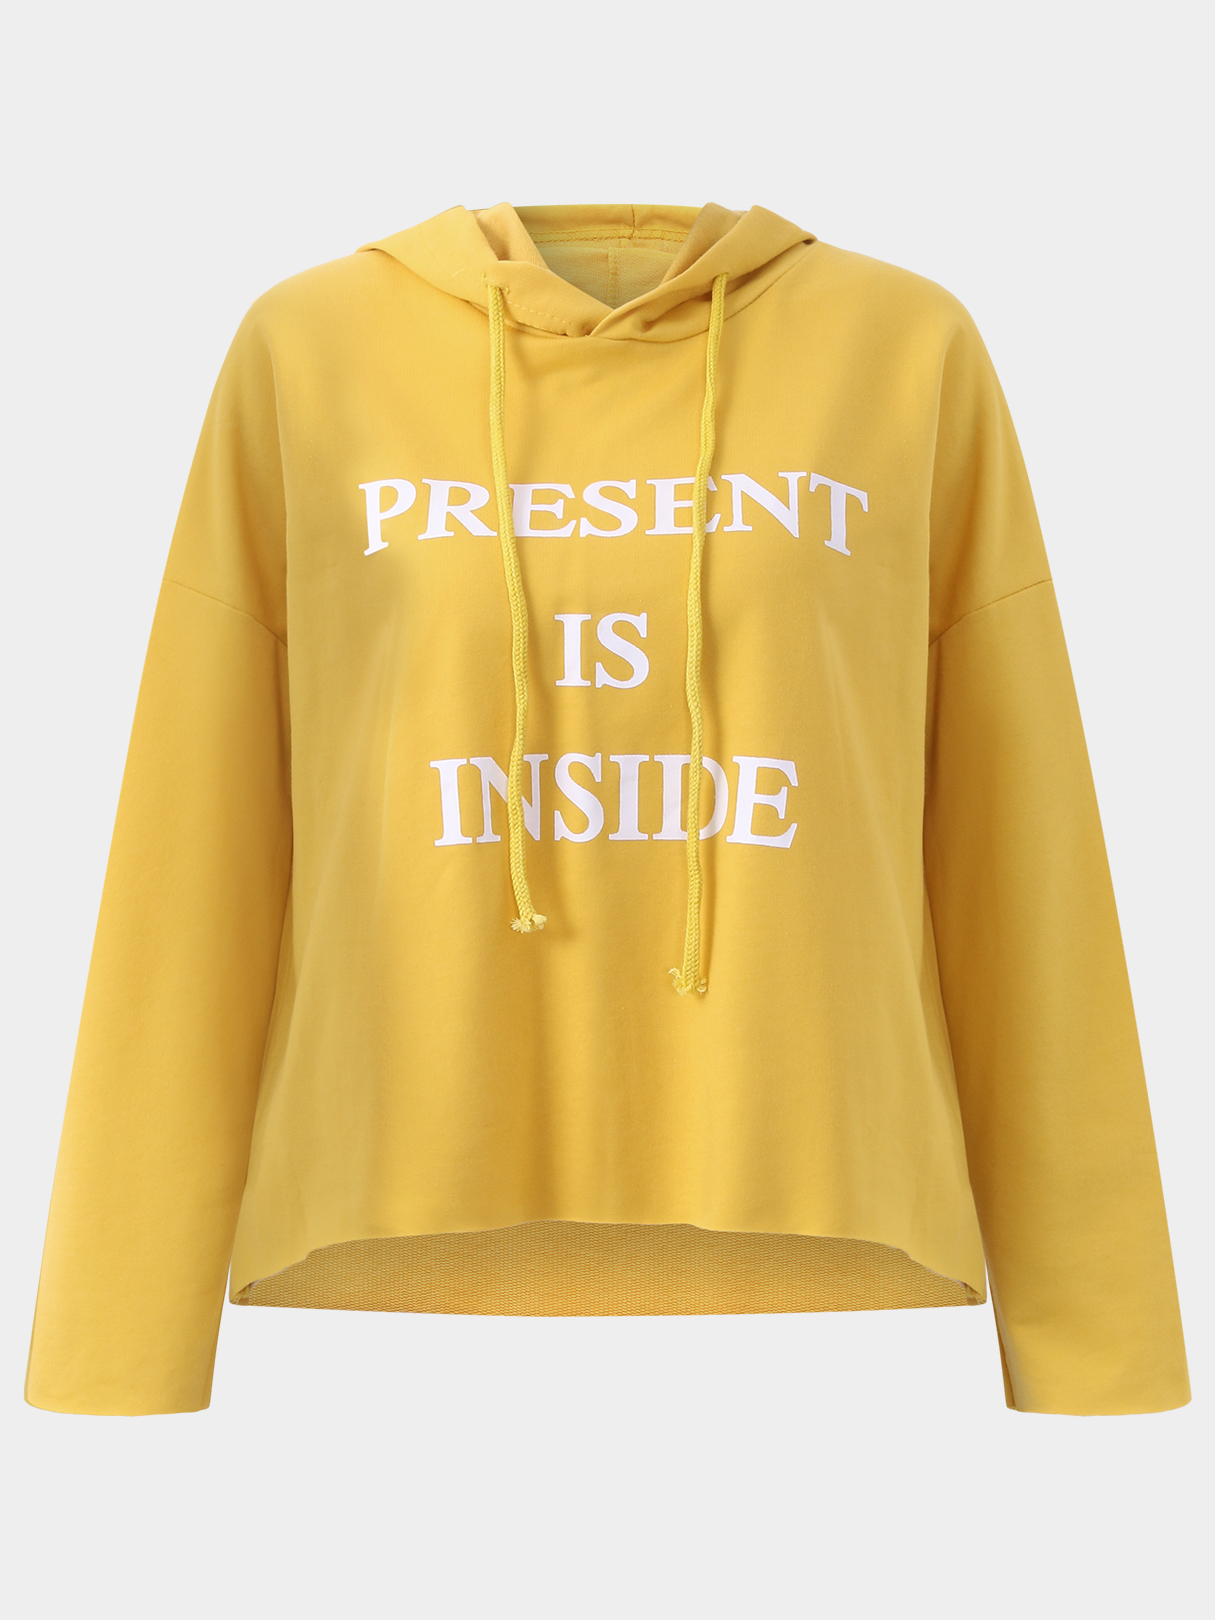 Active Cut Out Round Neck Letter Pattern Sports Hoodies in Yellow active cut out letter pattern weave sleeves sweatshirts in white